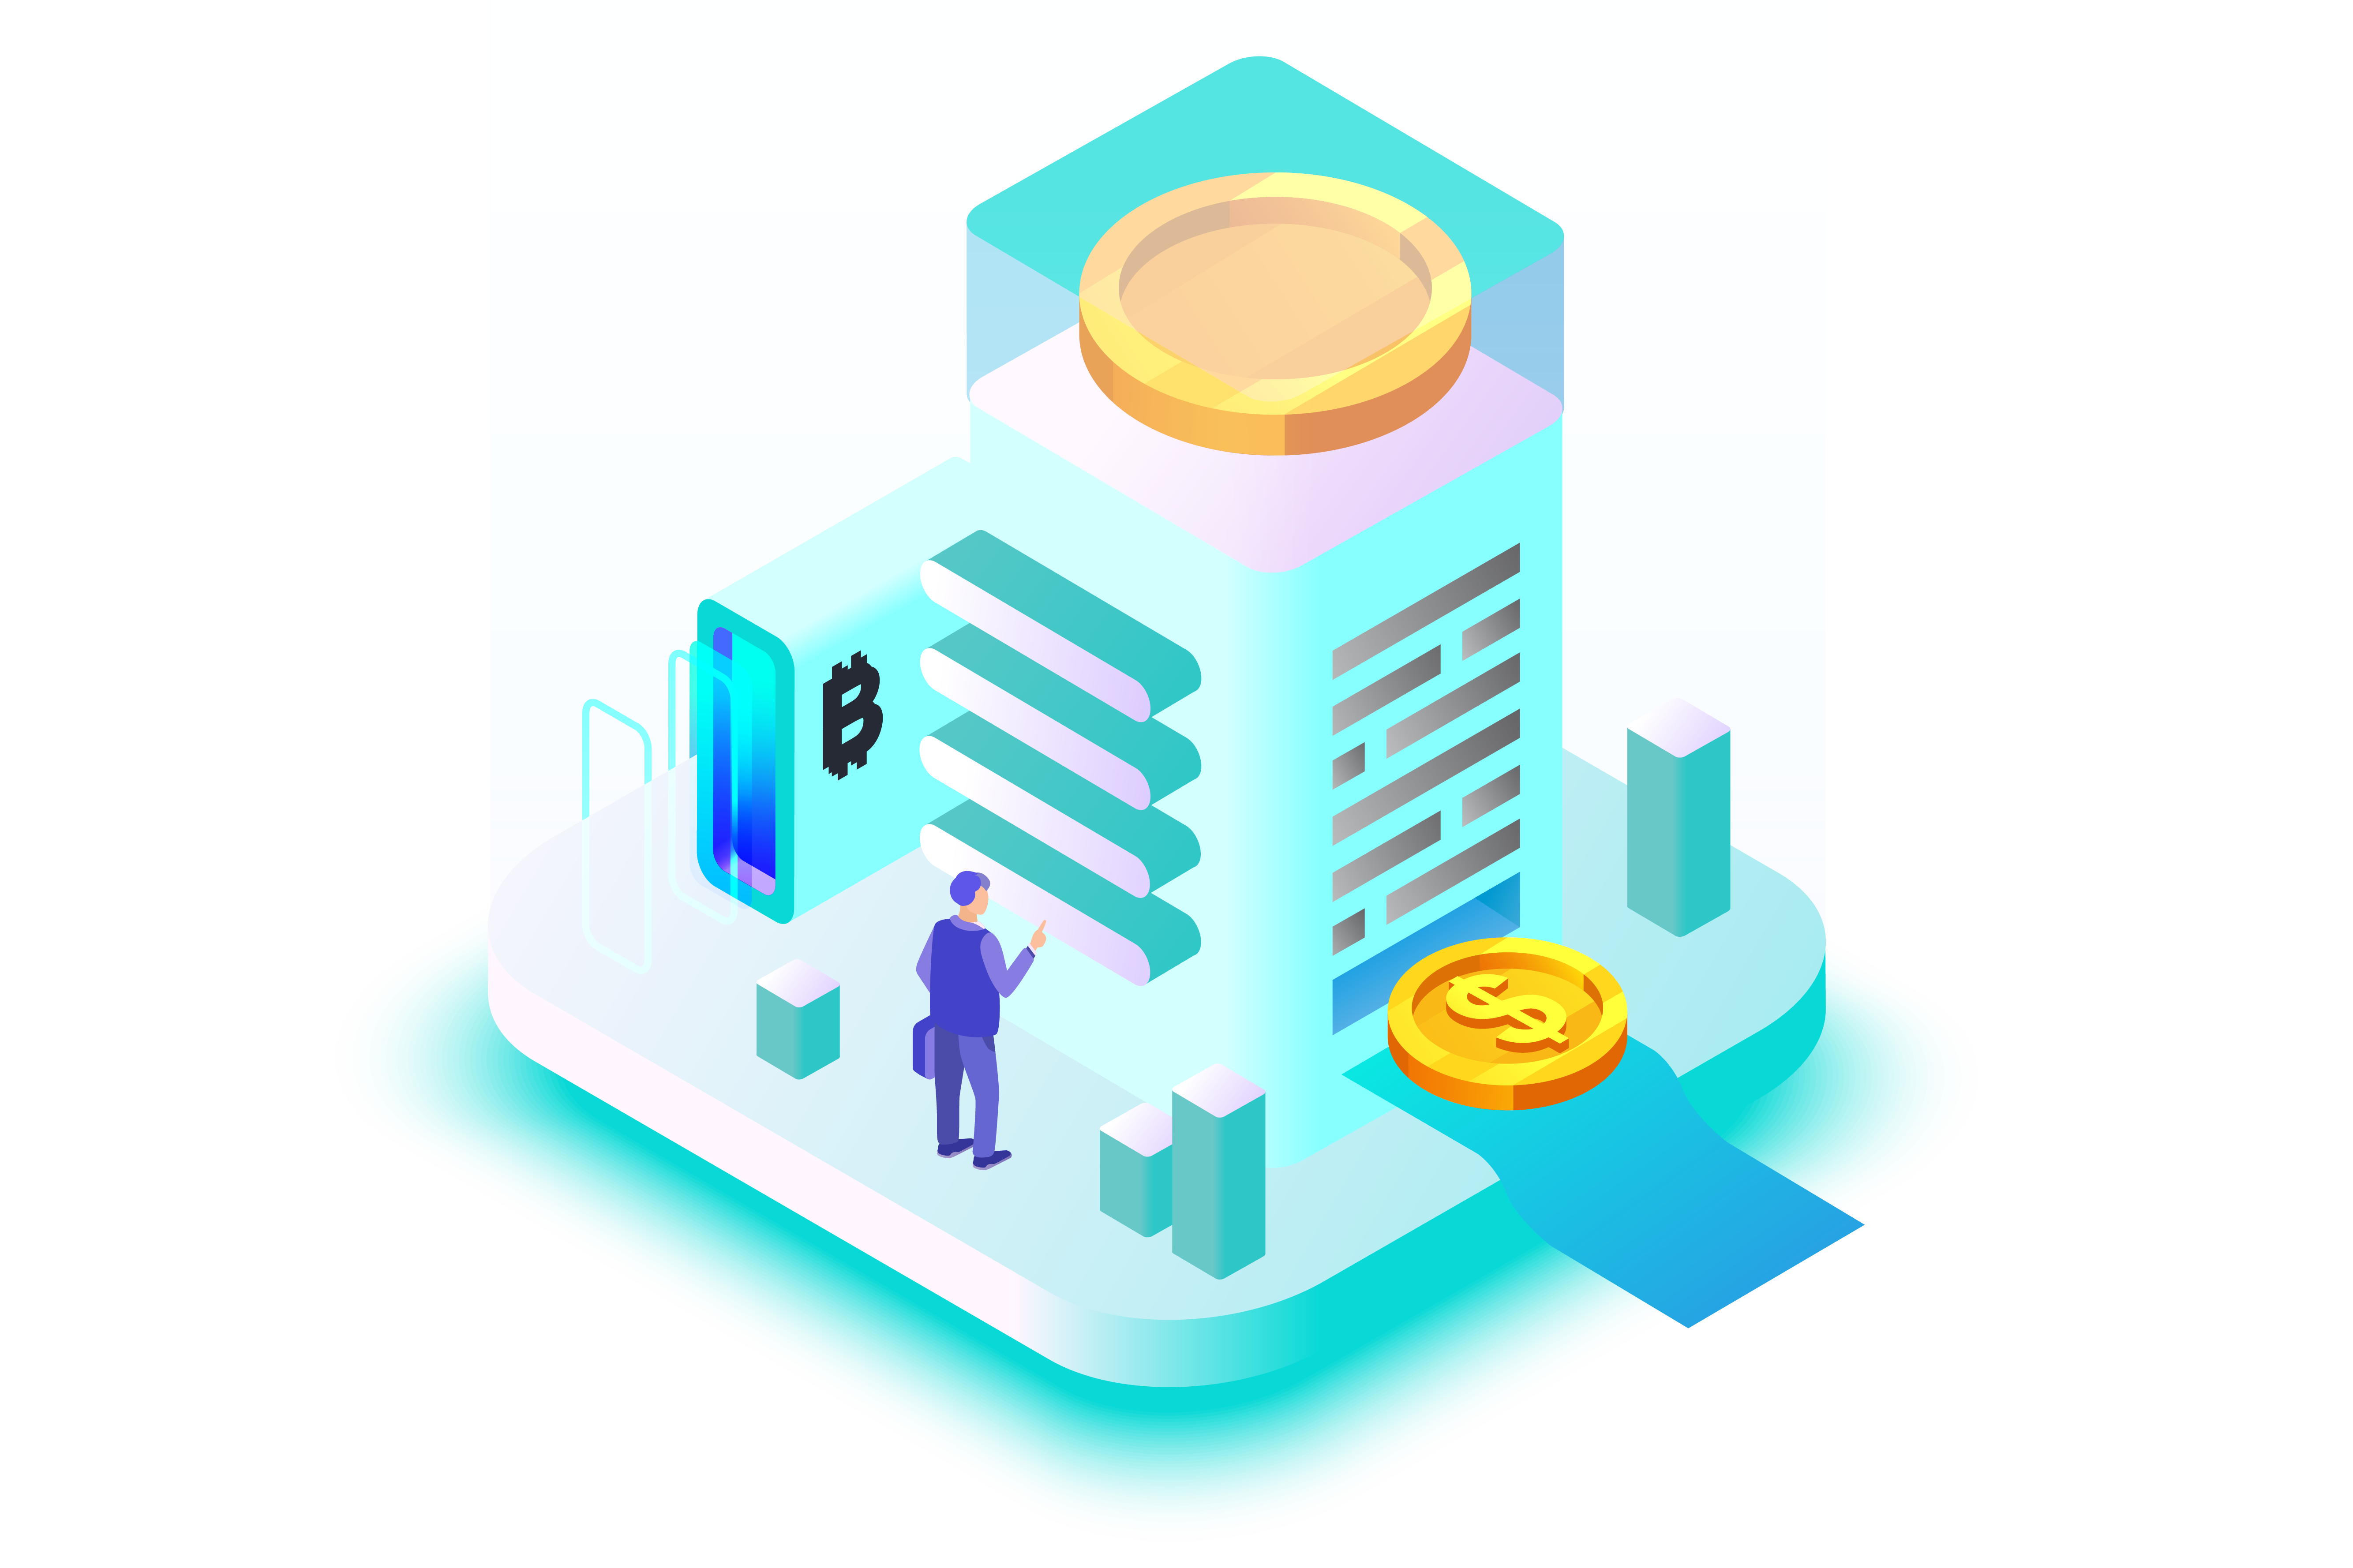 https://www.infomedia.co.id/wp-content/uploads/2020/07/2_Banking-2.png